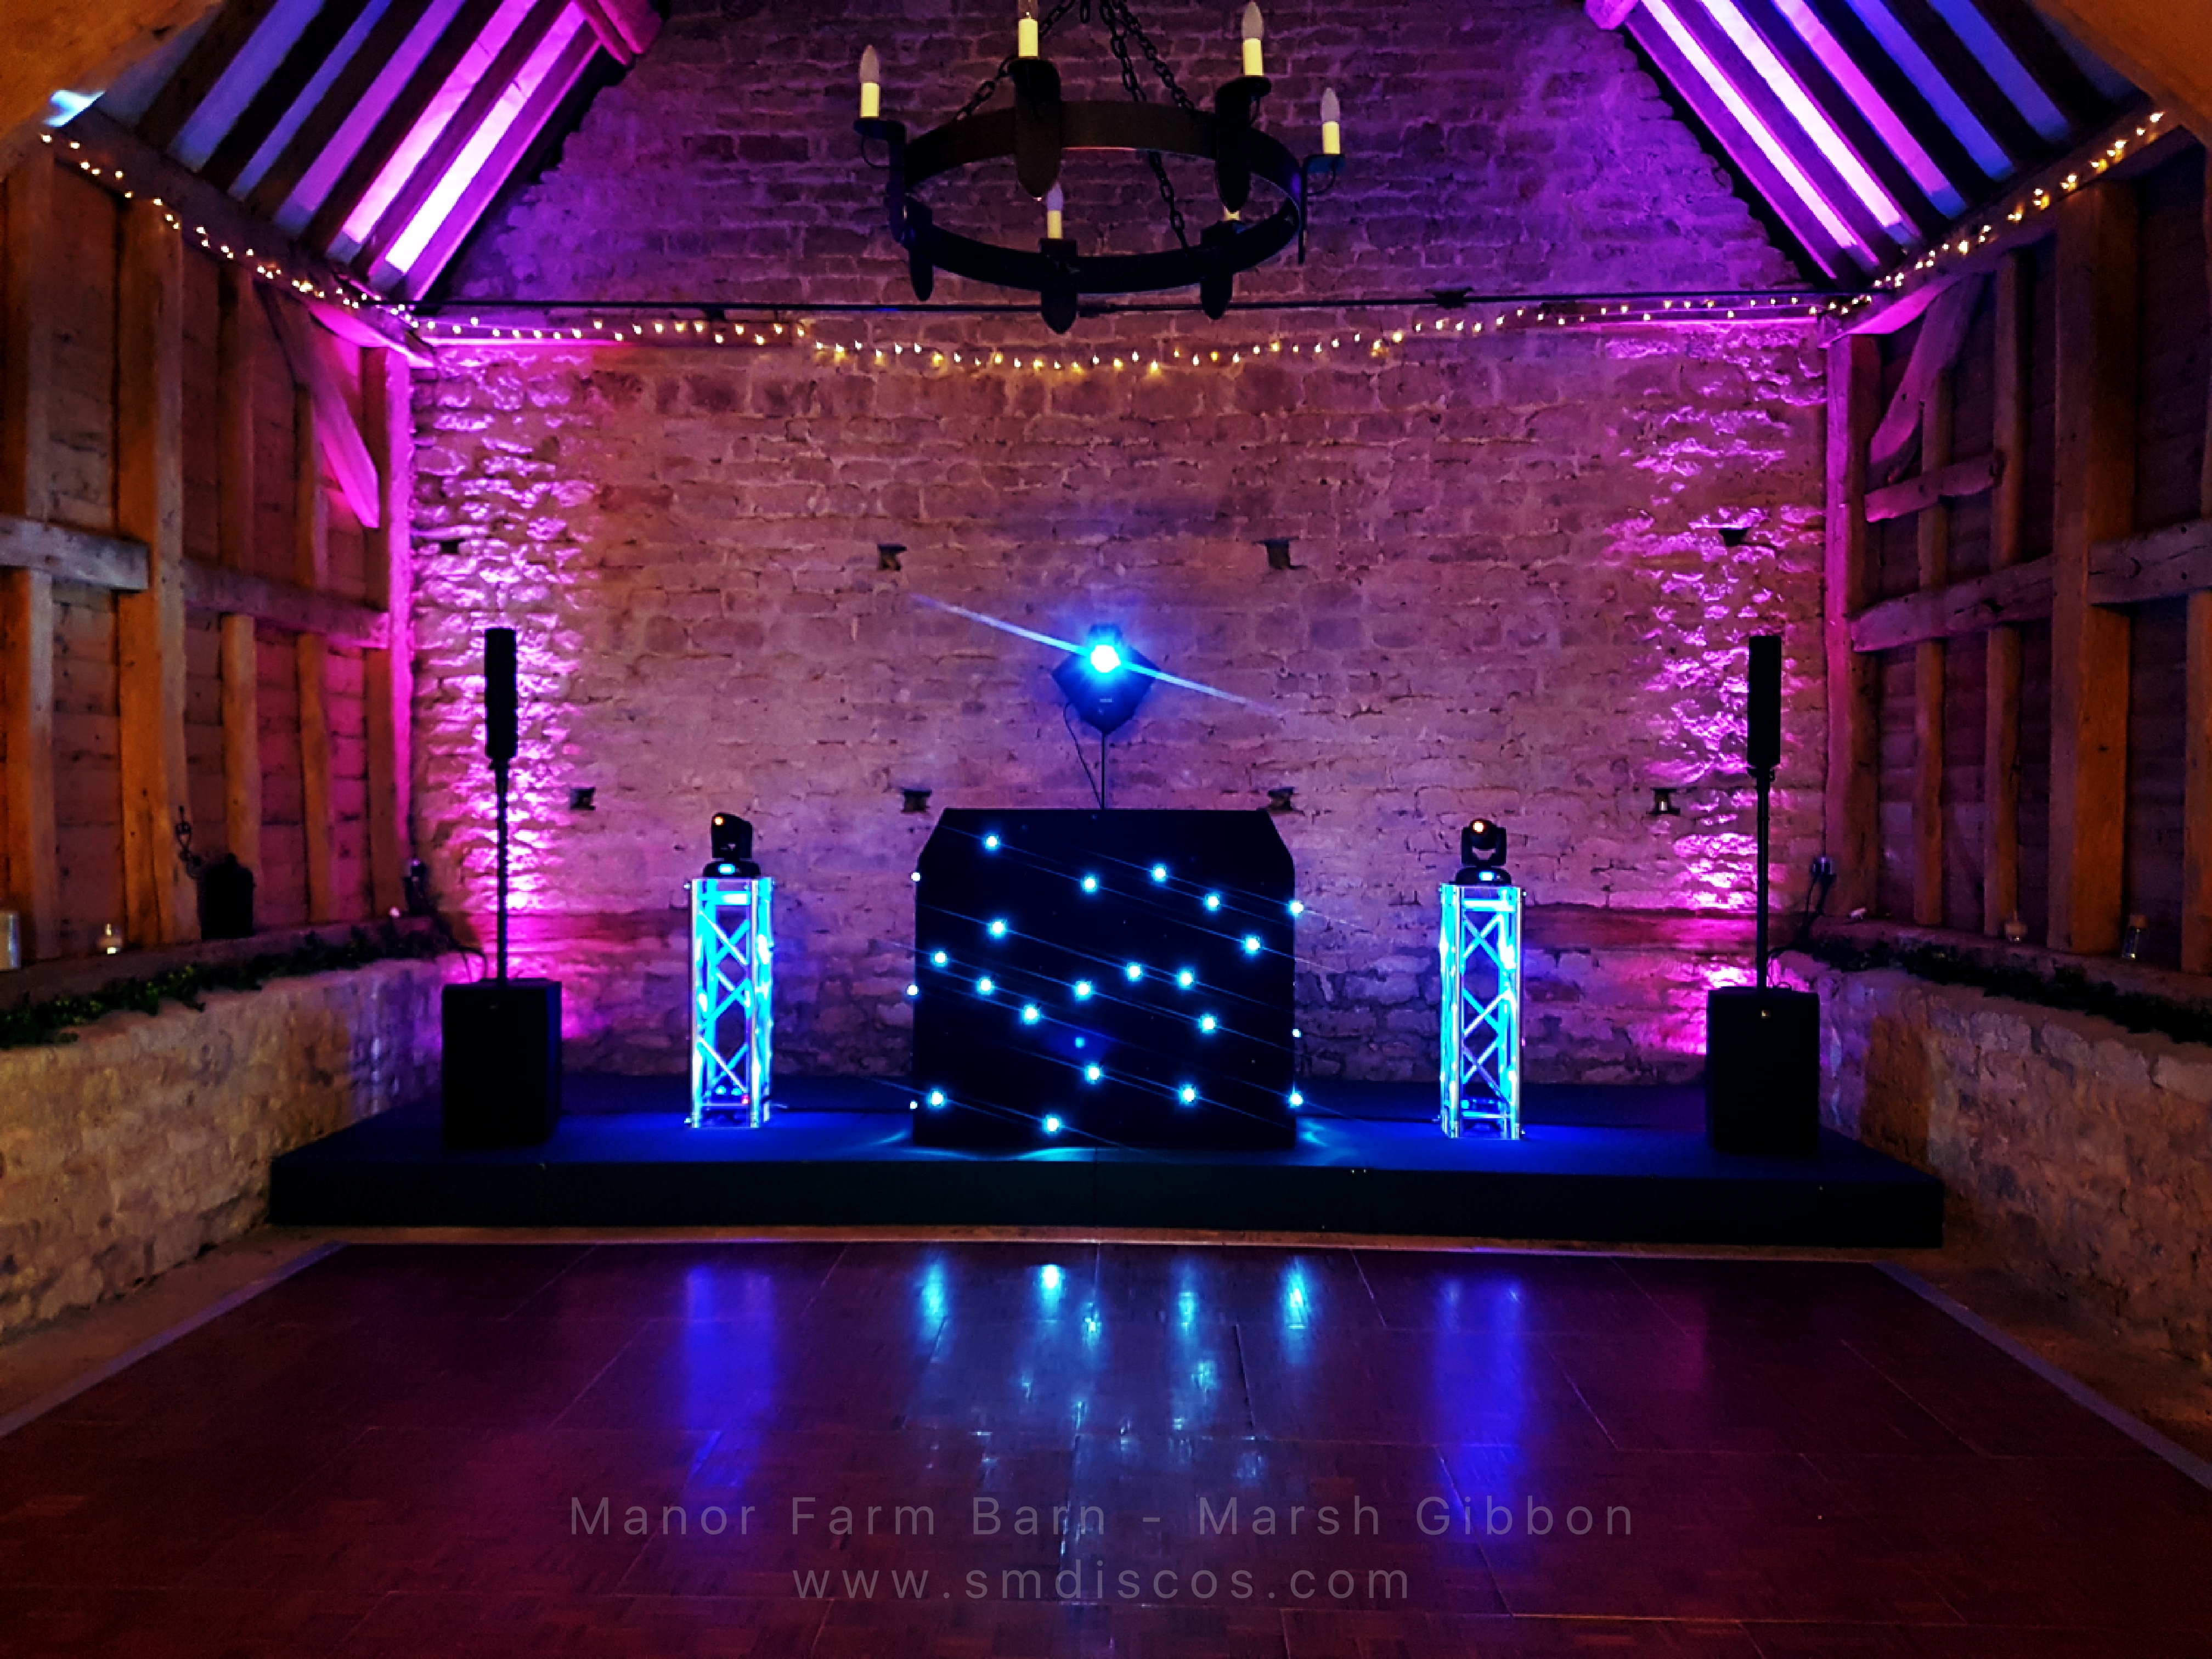 Wedding DJ rig & booth with mood lighting at Manor Farm Barn